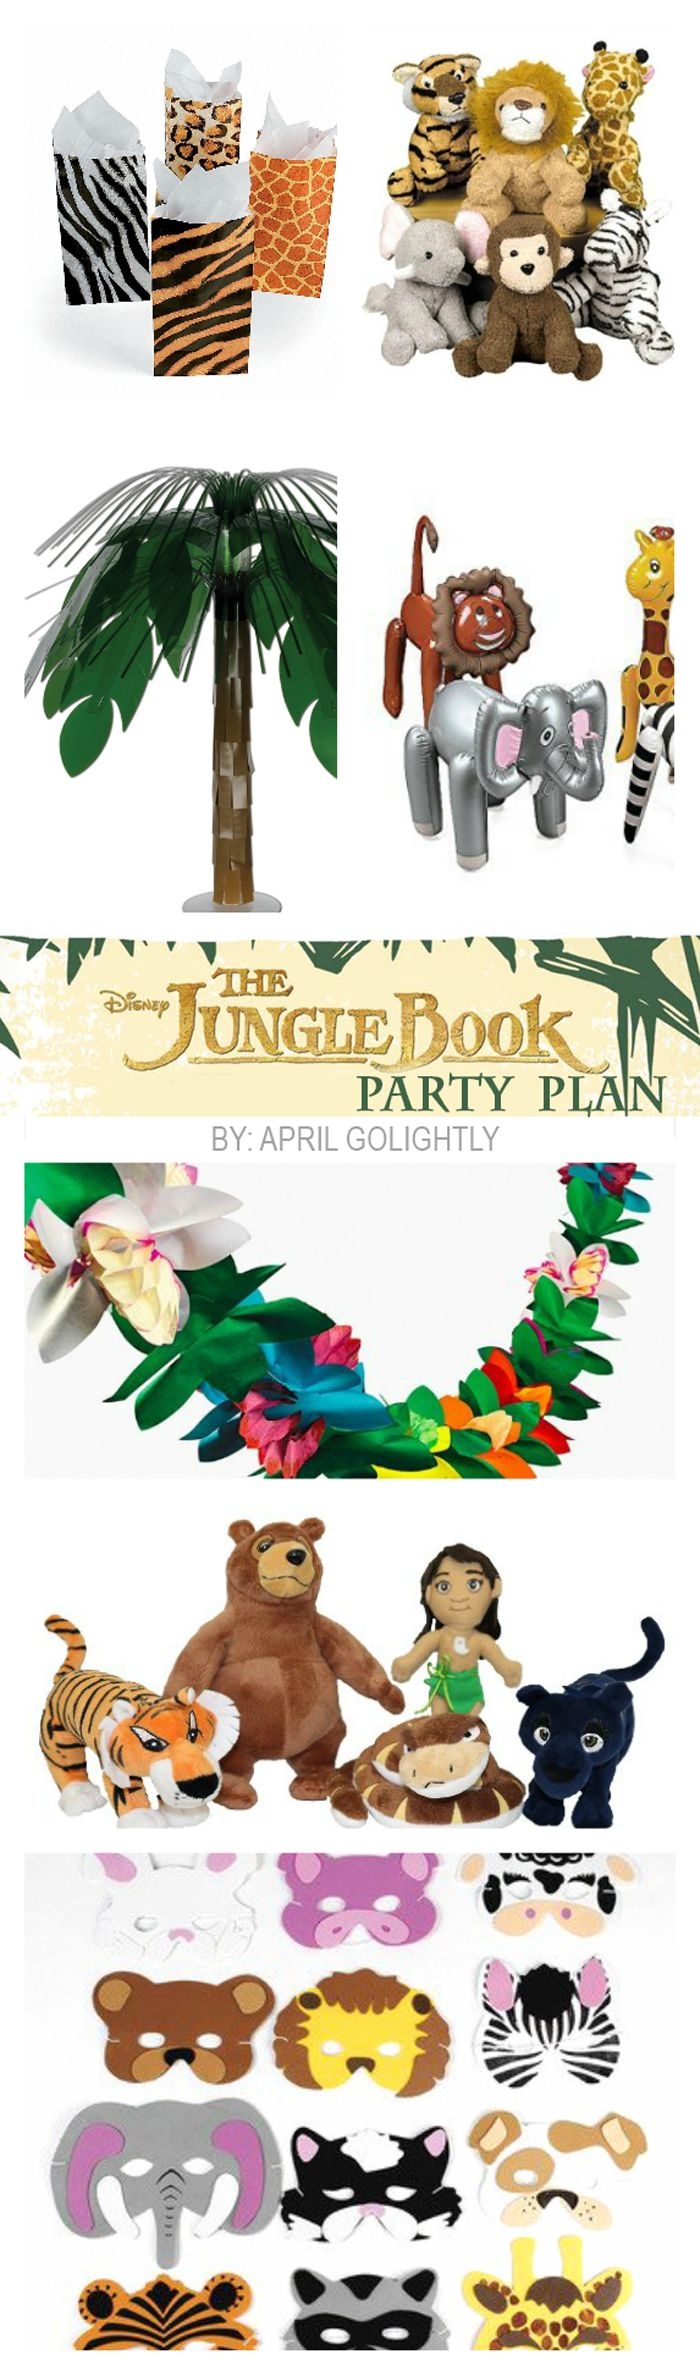 Jungle Book Party Ideas with a complete plan for this Disney Party